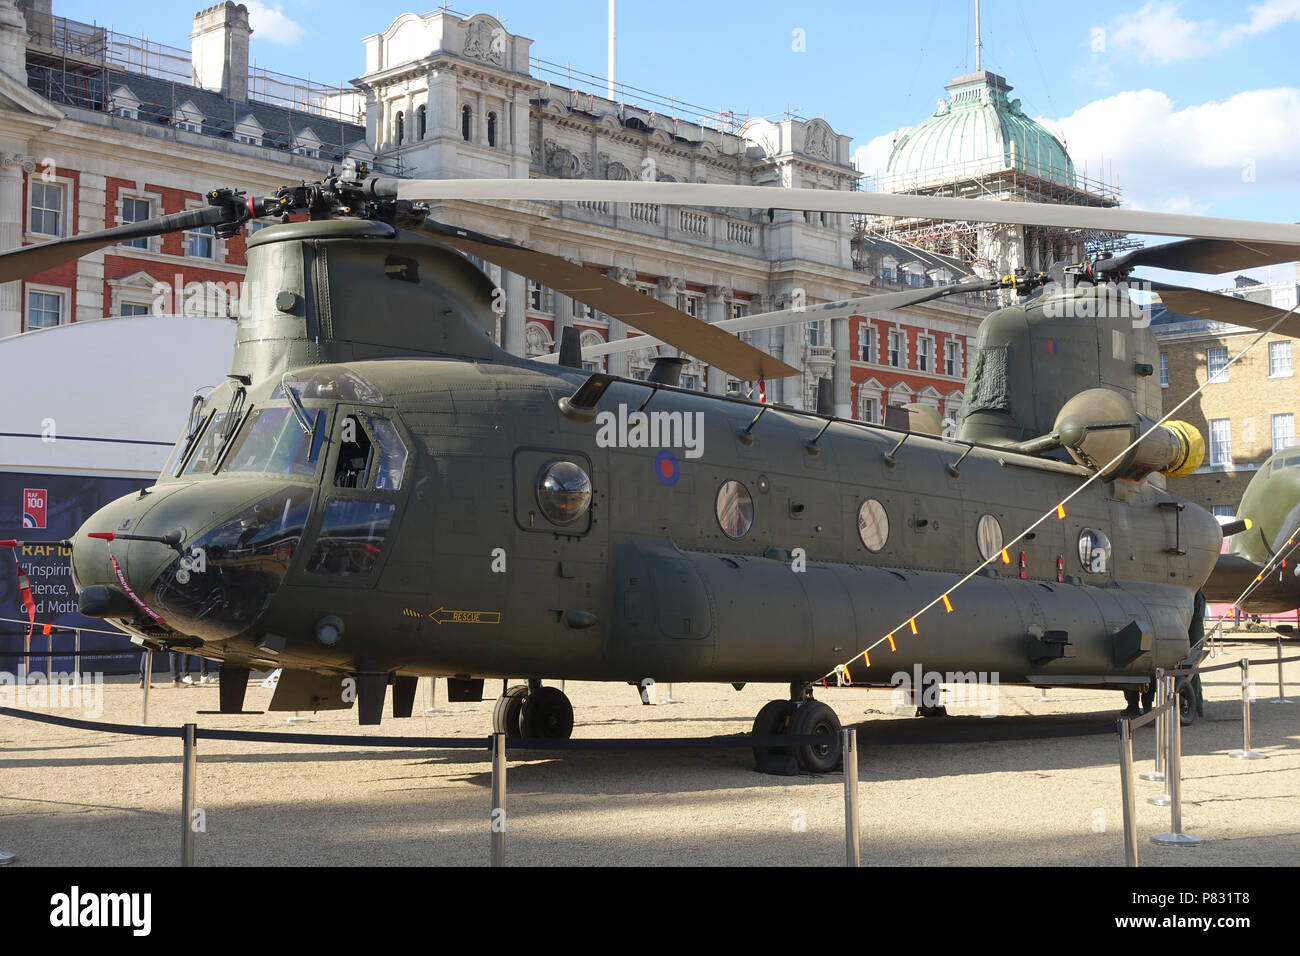 Front view of a Chinook twin-rotor helicopter at the RAF100 Aircraft Tour at Horse Guards London in July 2018 - Stock Image